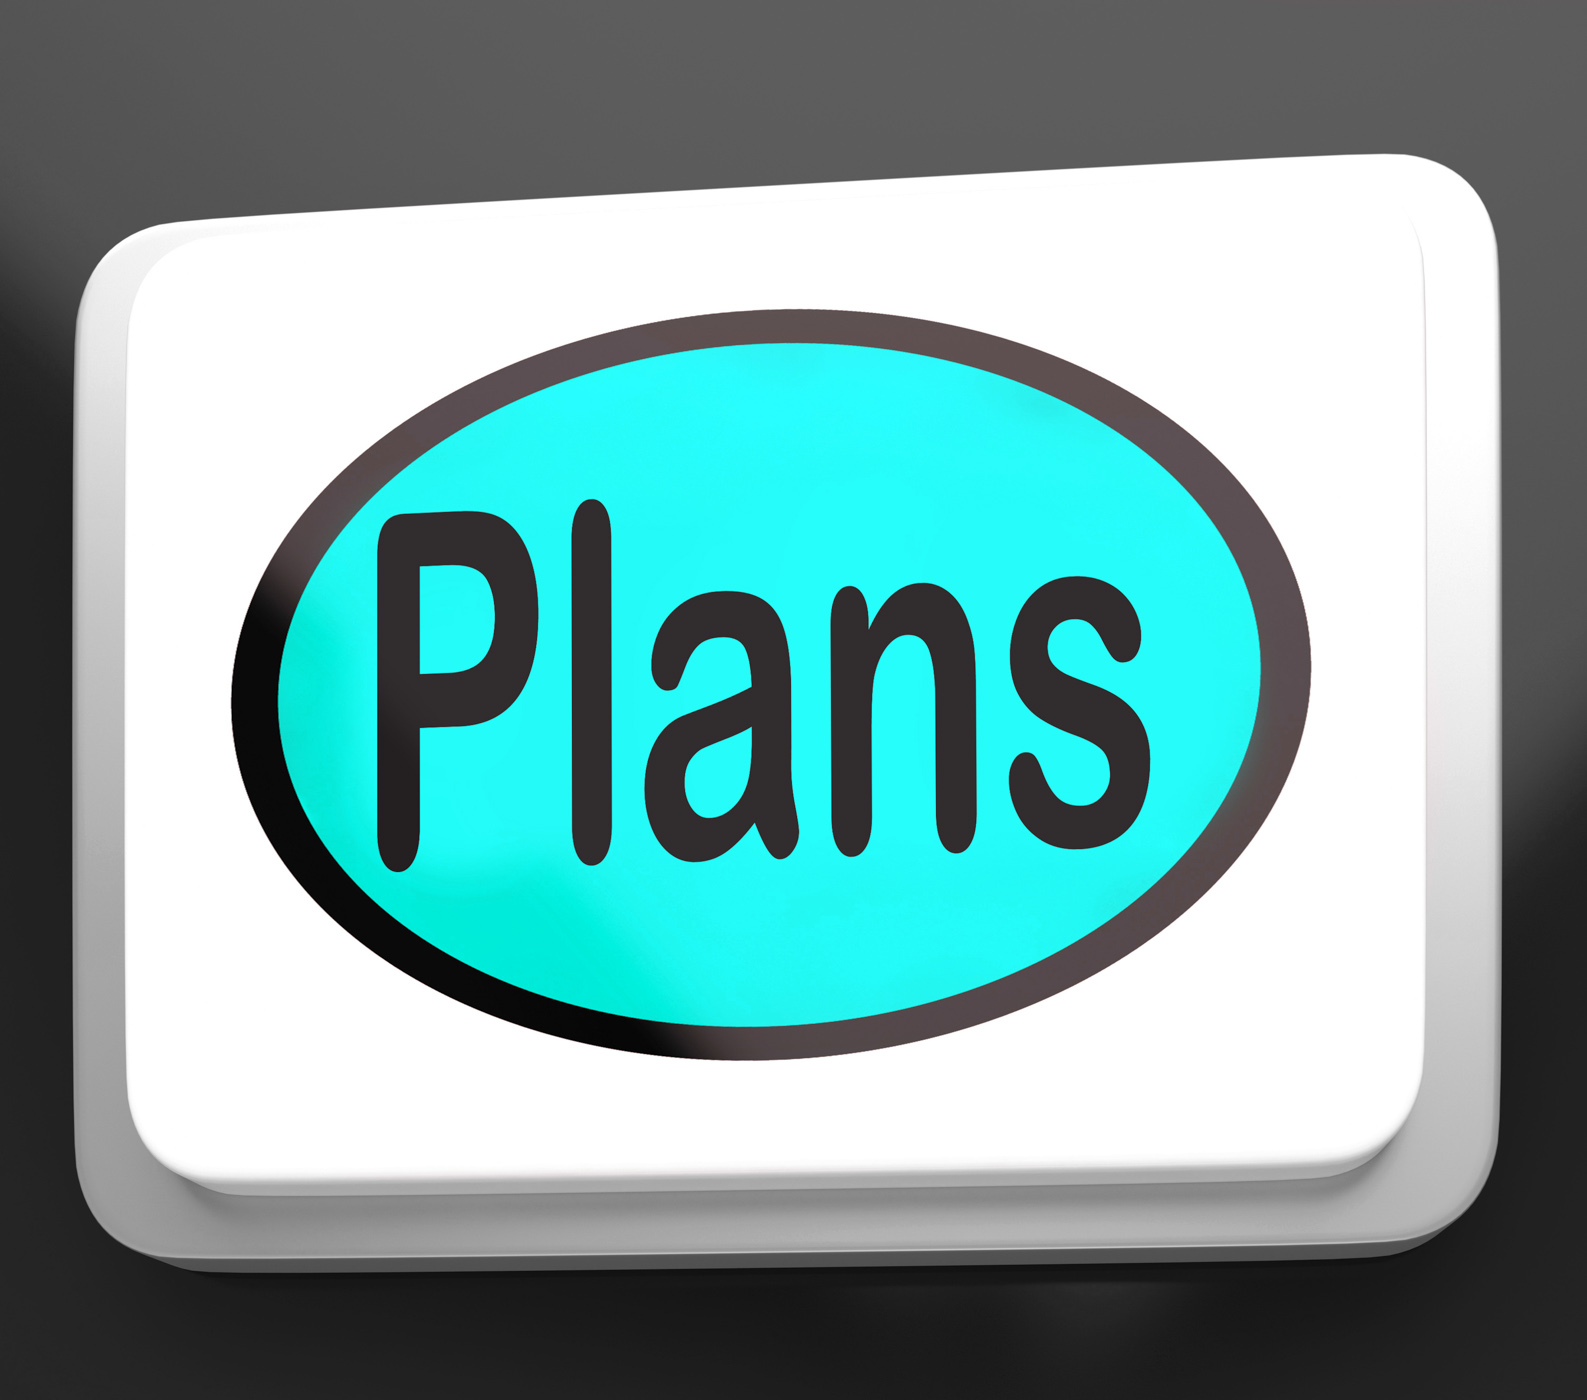 Plans Button Shows Objectives Planning And Organizing, Aim, Aspirations, Aspire, Button, HQ Photo